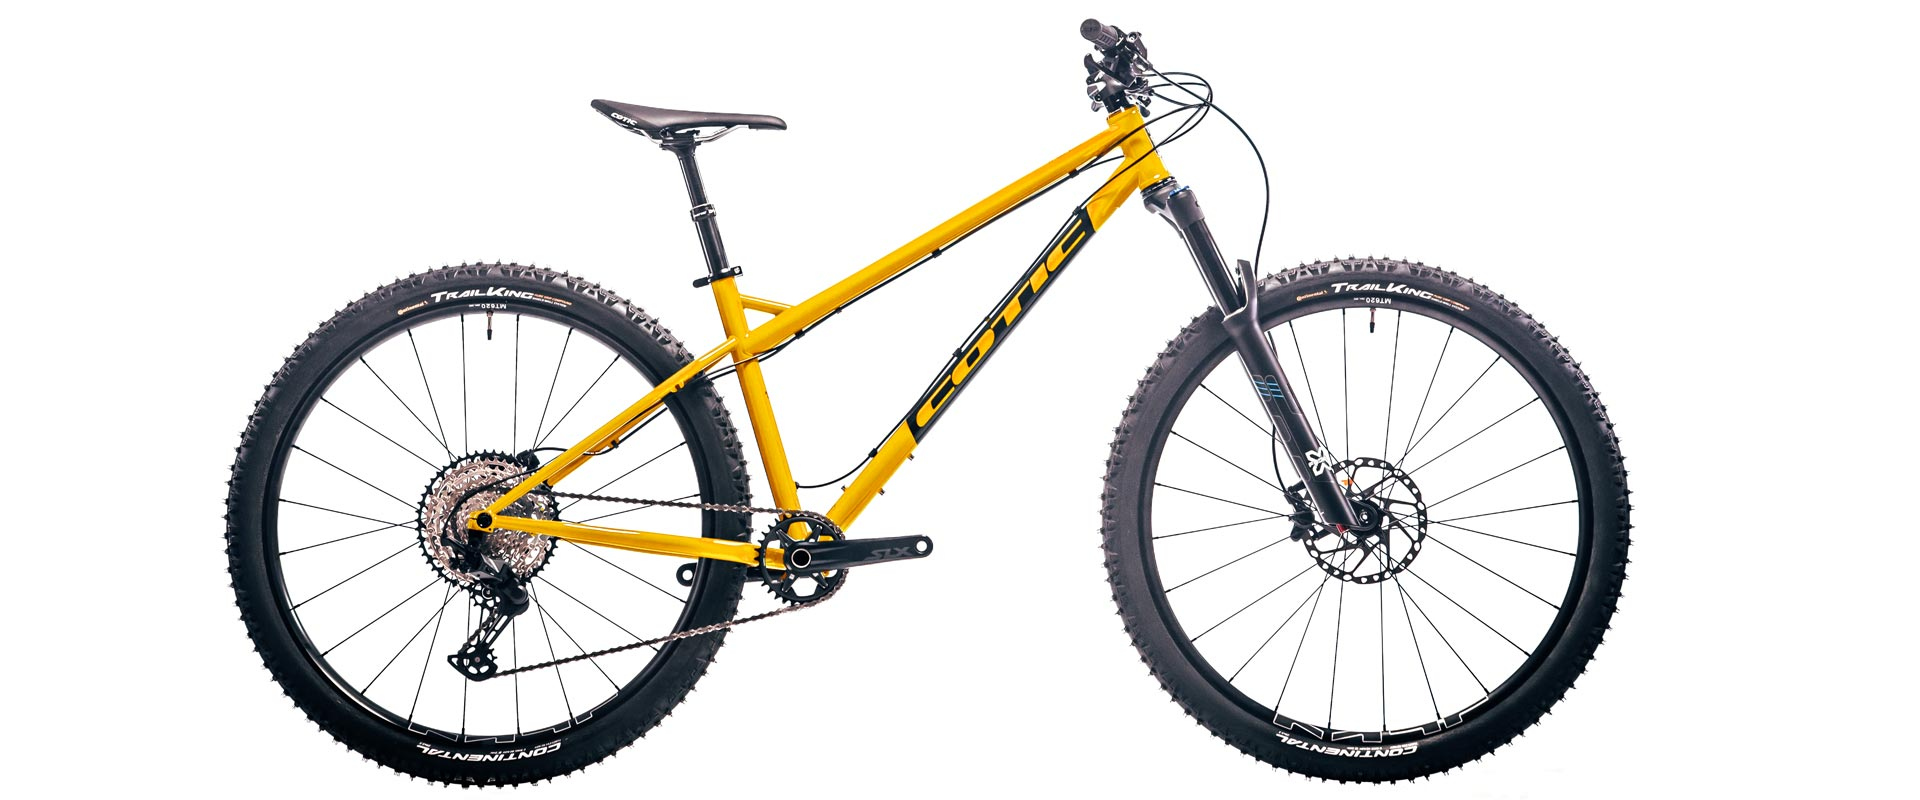 Cotic BFeMAX, sunny yellow, cotic steel full suspension, 853 downtube, steel mountain bike, steel is real, enduro mountain bike, 29 mountain bike, 160mm travel, progressive geometry mountain bike, british mountain bike, sheffield steel, reynolds 853, longer lower slacker, slack geometry, long geometry